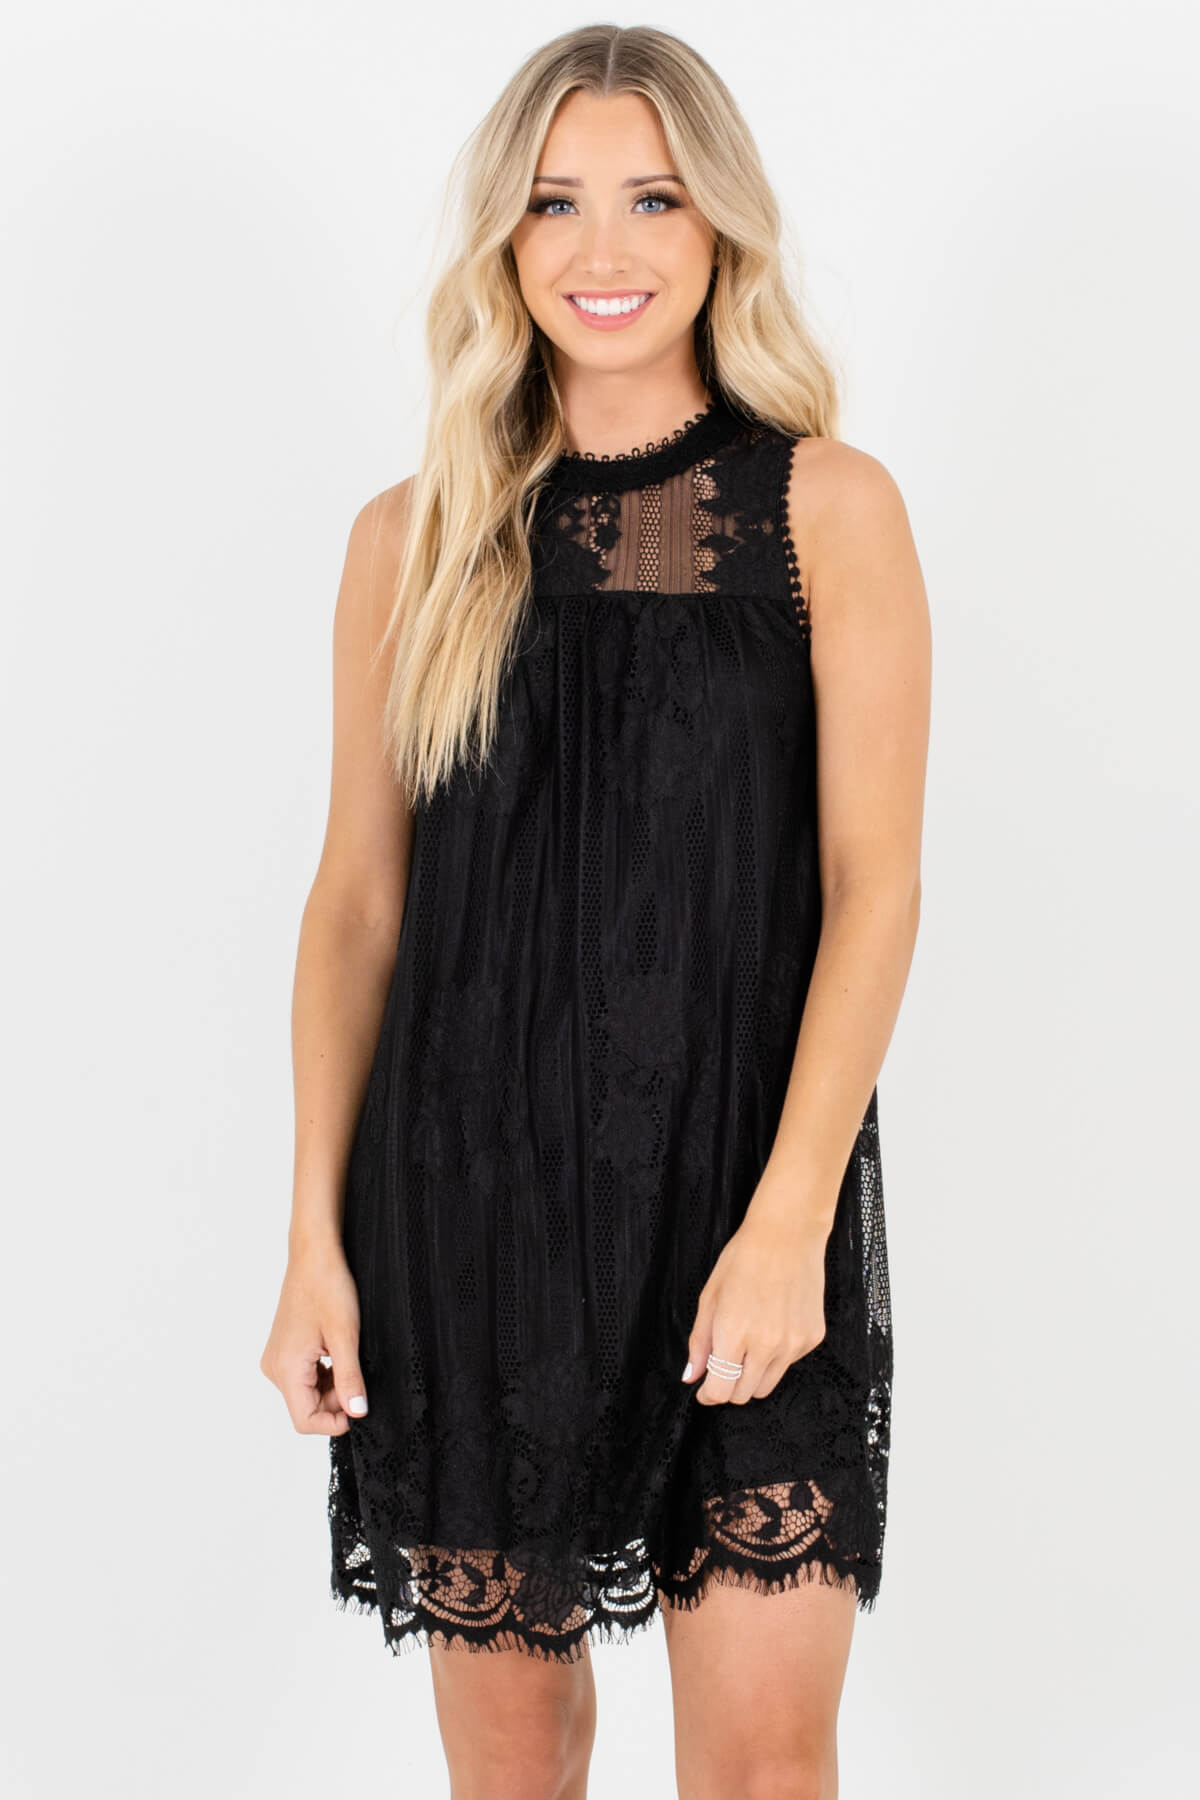 667d3e741e56 Beauty & Grace Black Lace Mini Dress | Boutique Mini Dresses